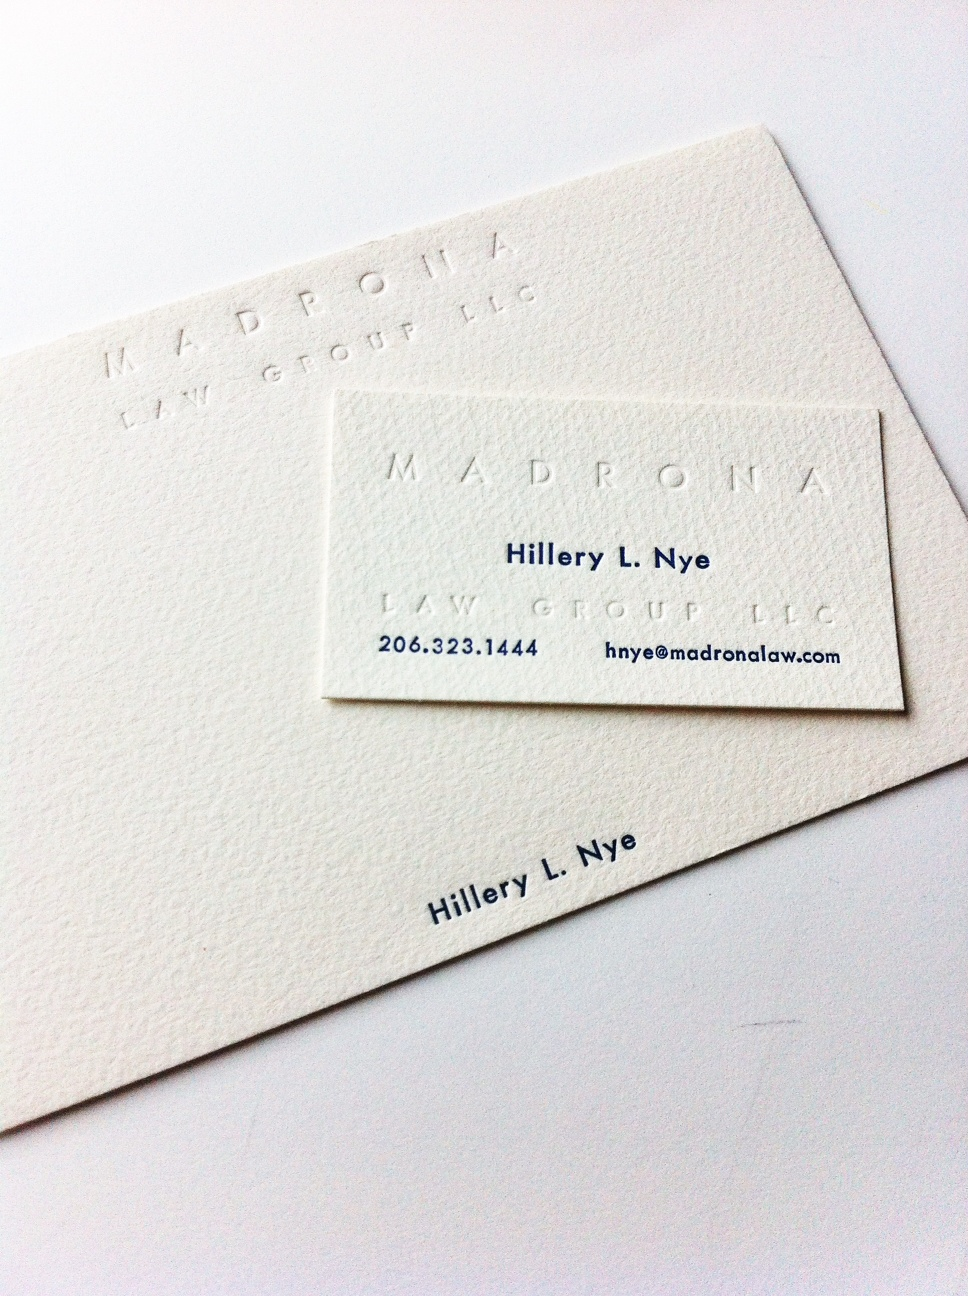 Business Stationary for Hillery L. Nye, made with hand set type from our vintage collection here at Bremelo Press.